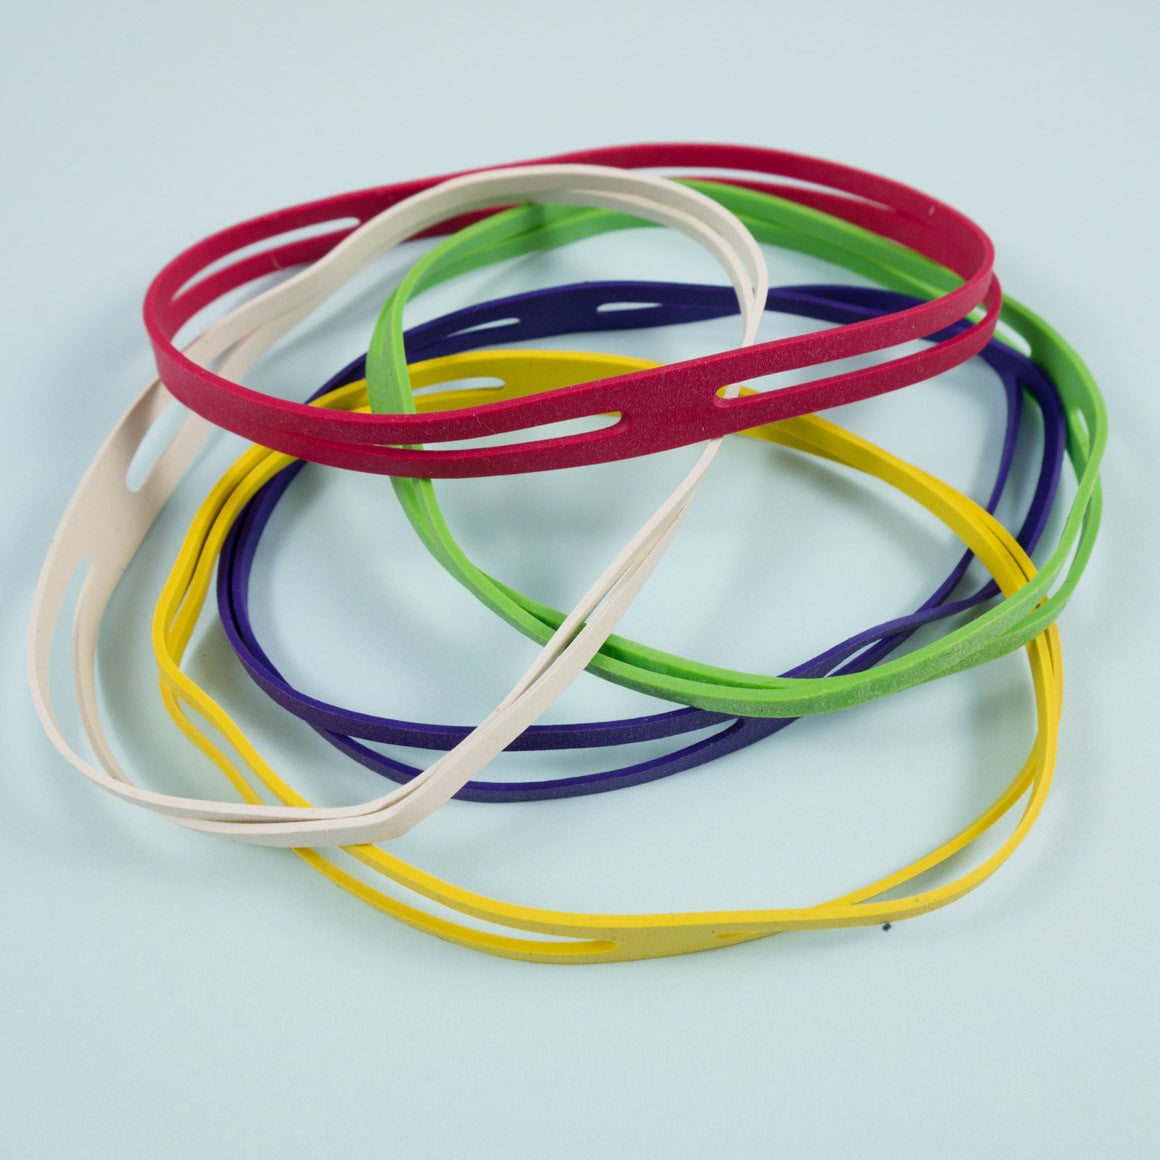 selection of  4 way rubber bands